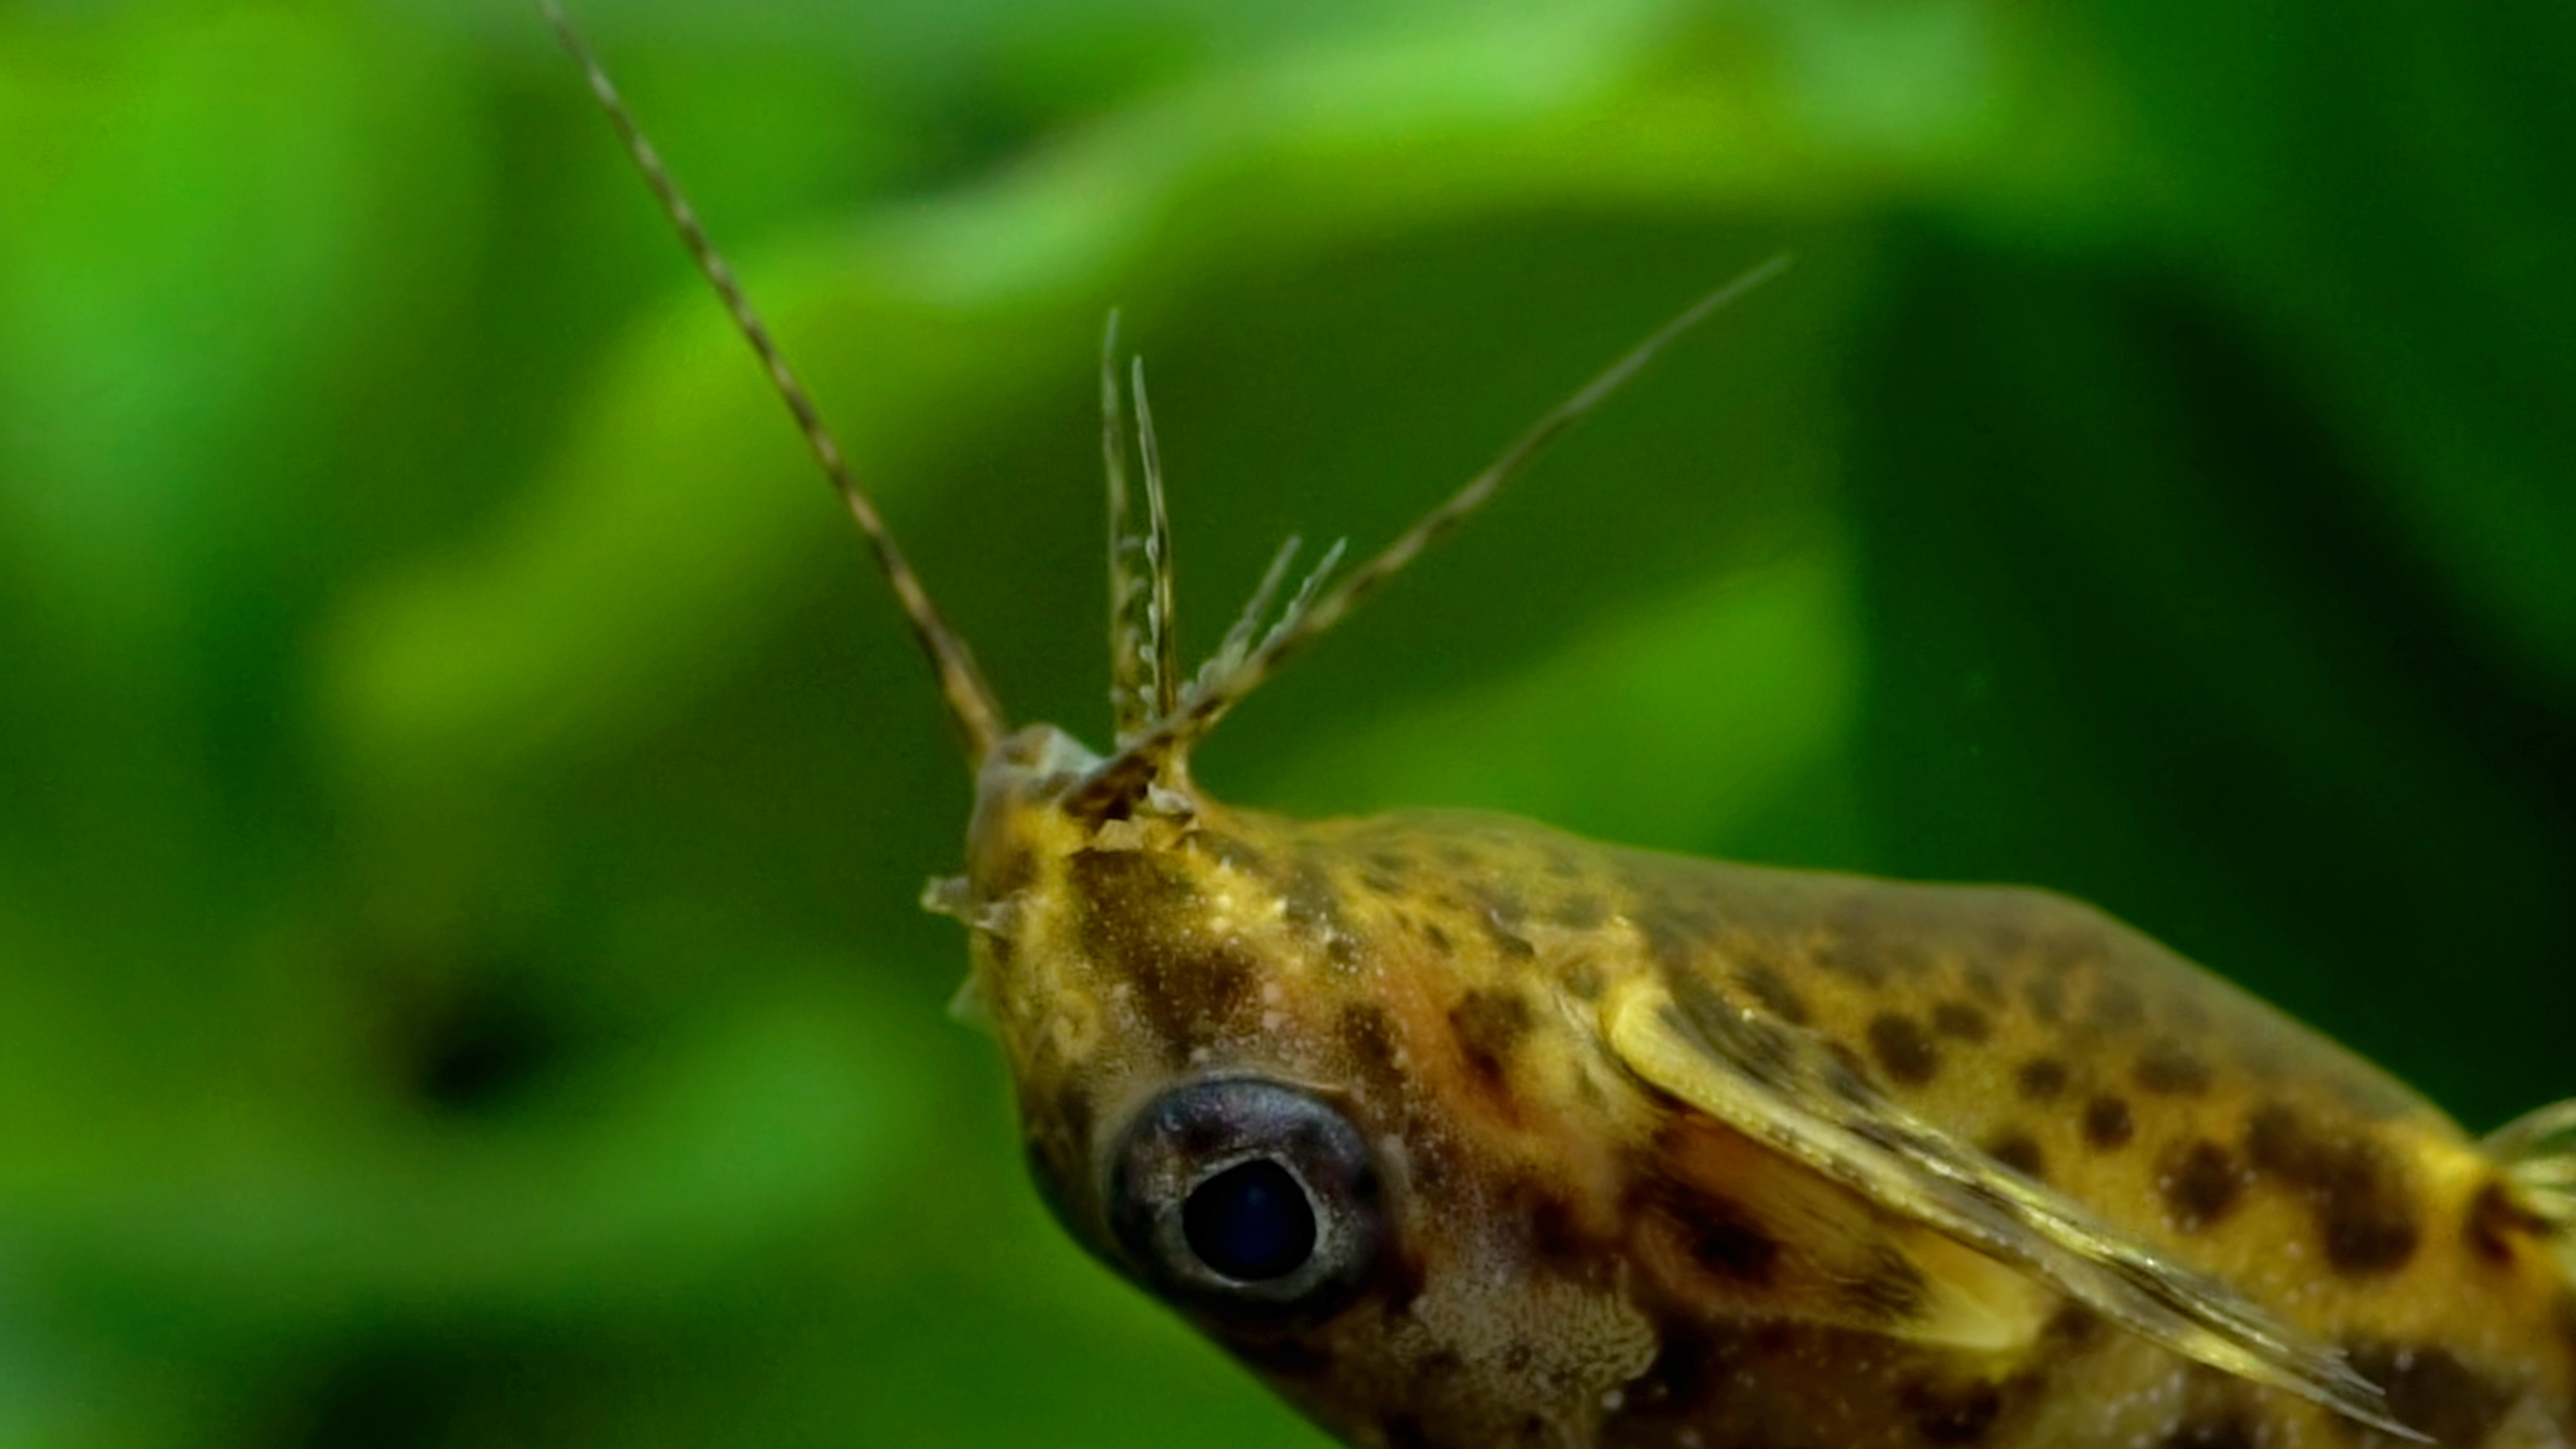 The Mystery of the Upside-Down Catfish | Deep Look | KQED